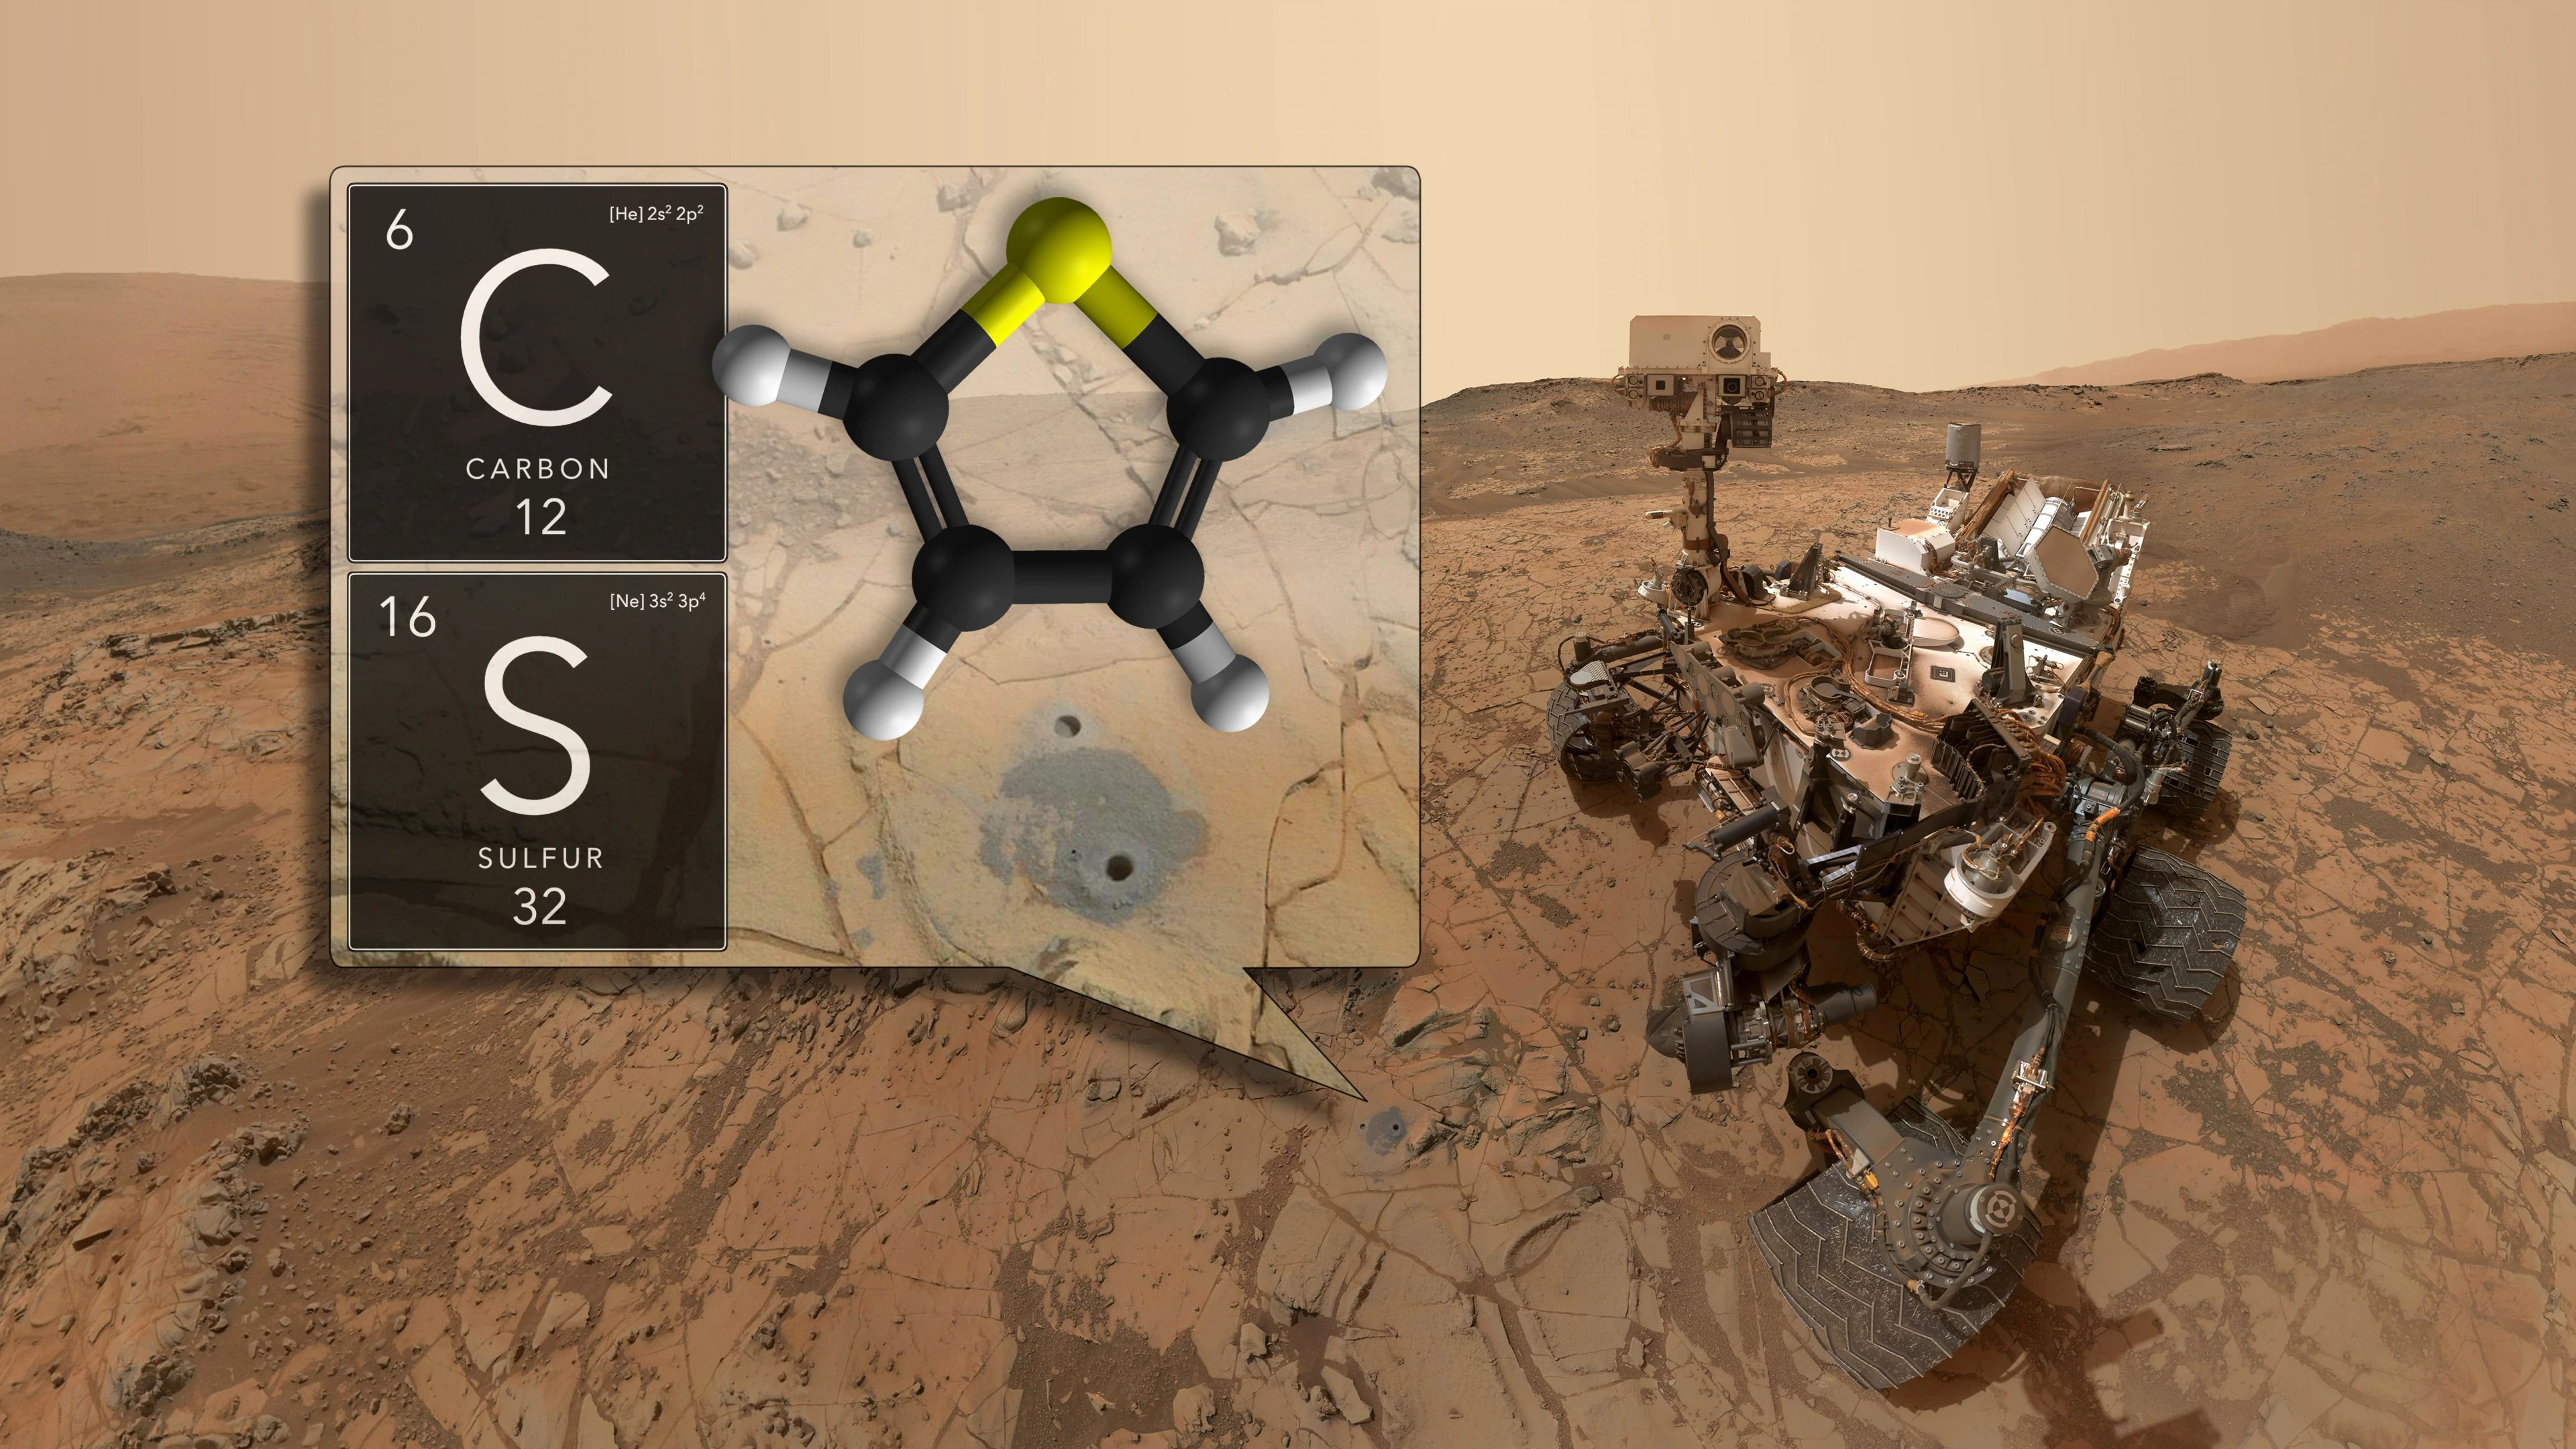 NASA's Curiosity rover finds organic molecules on Mars